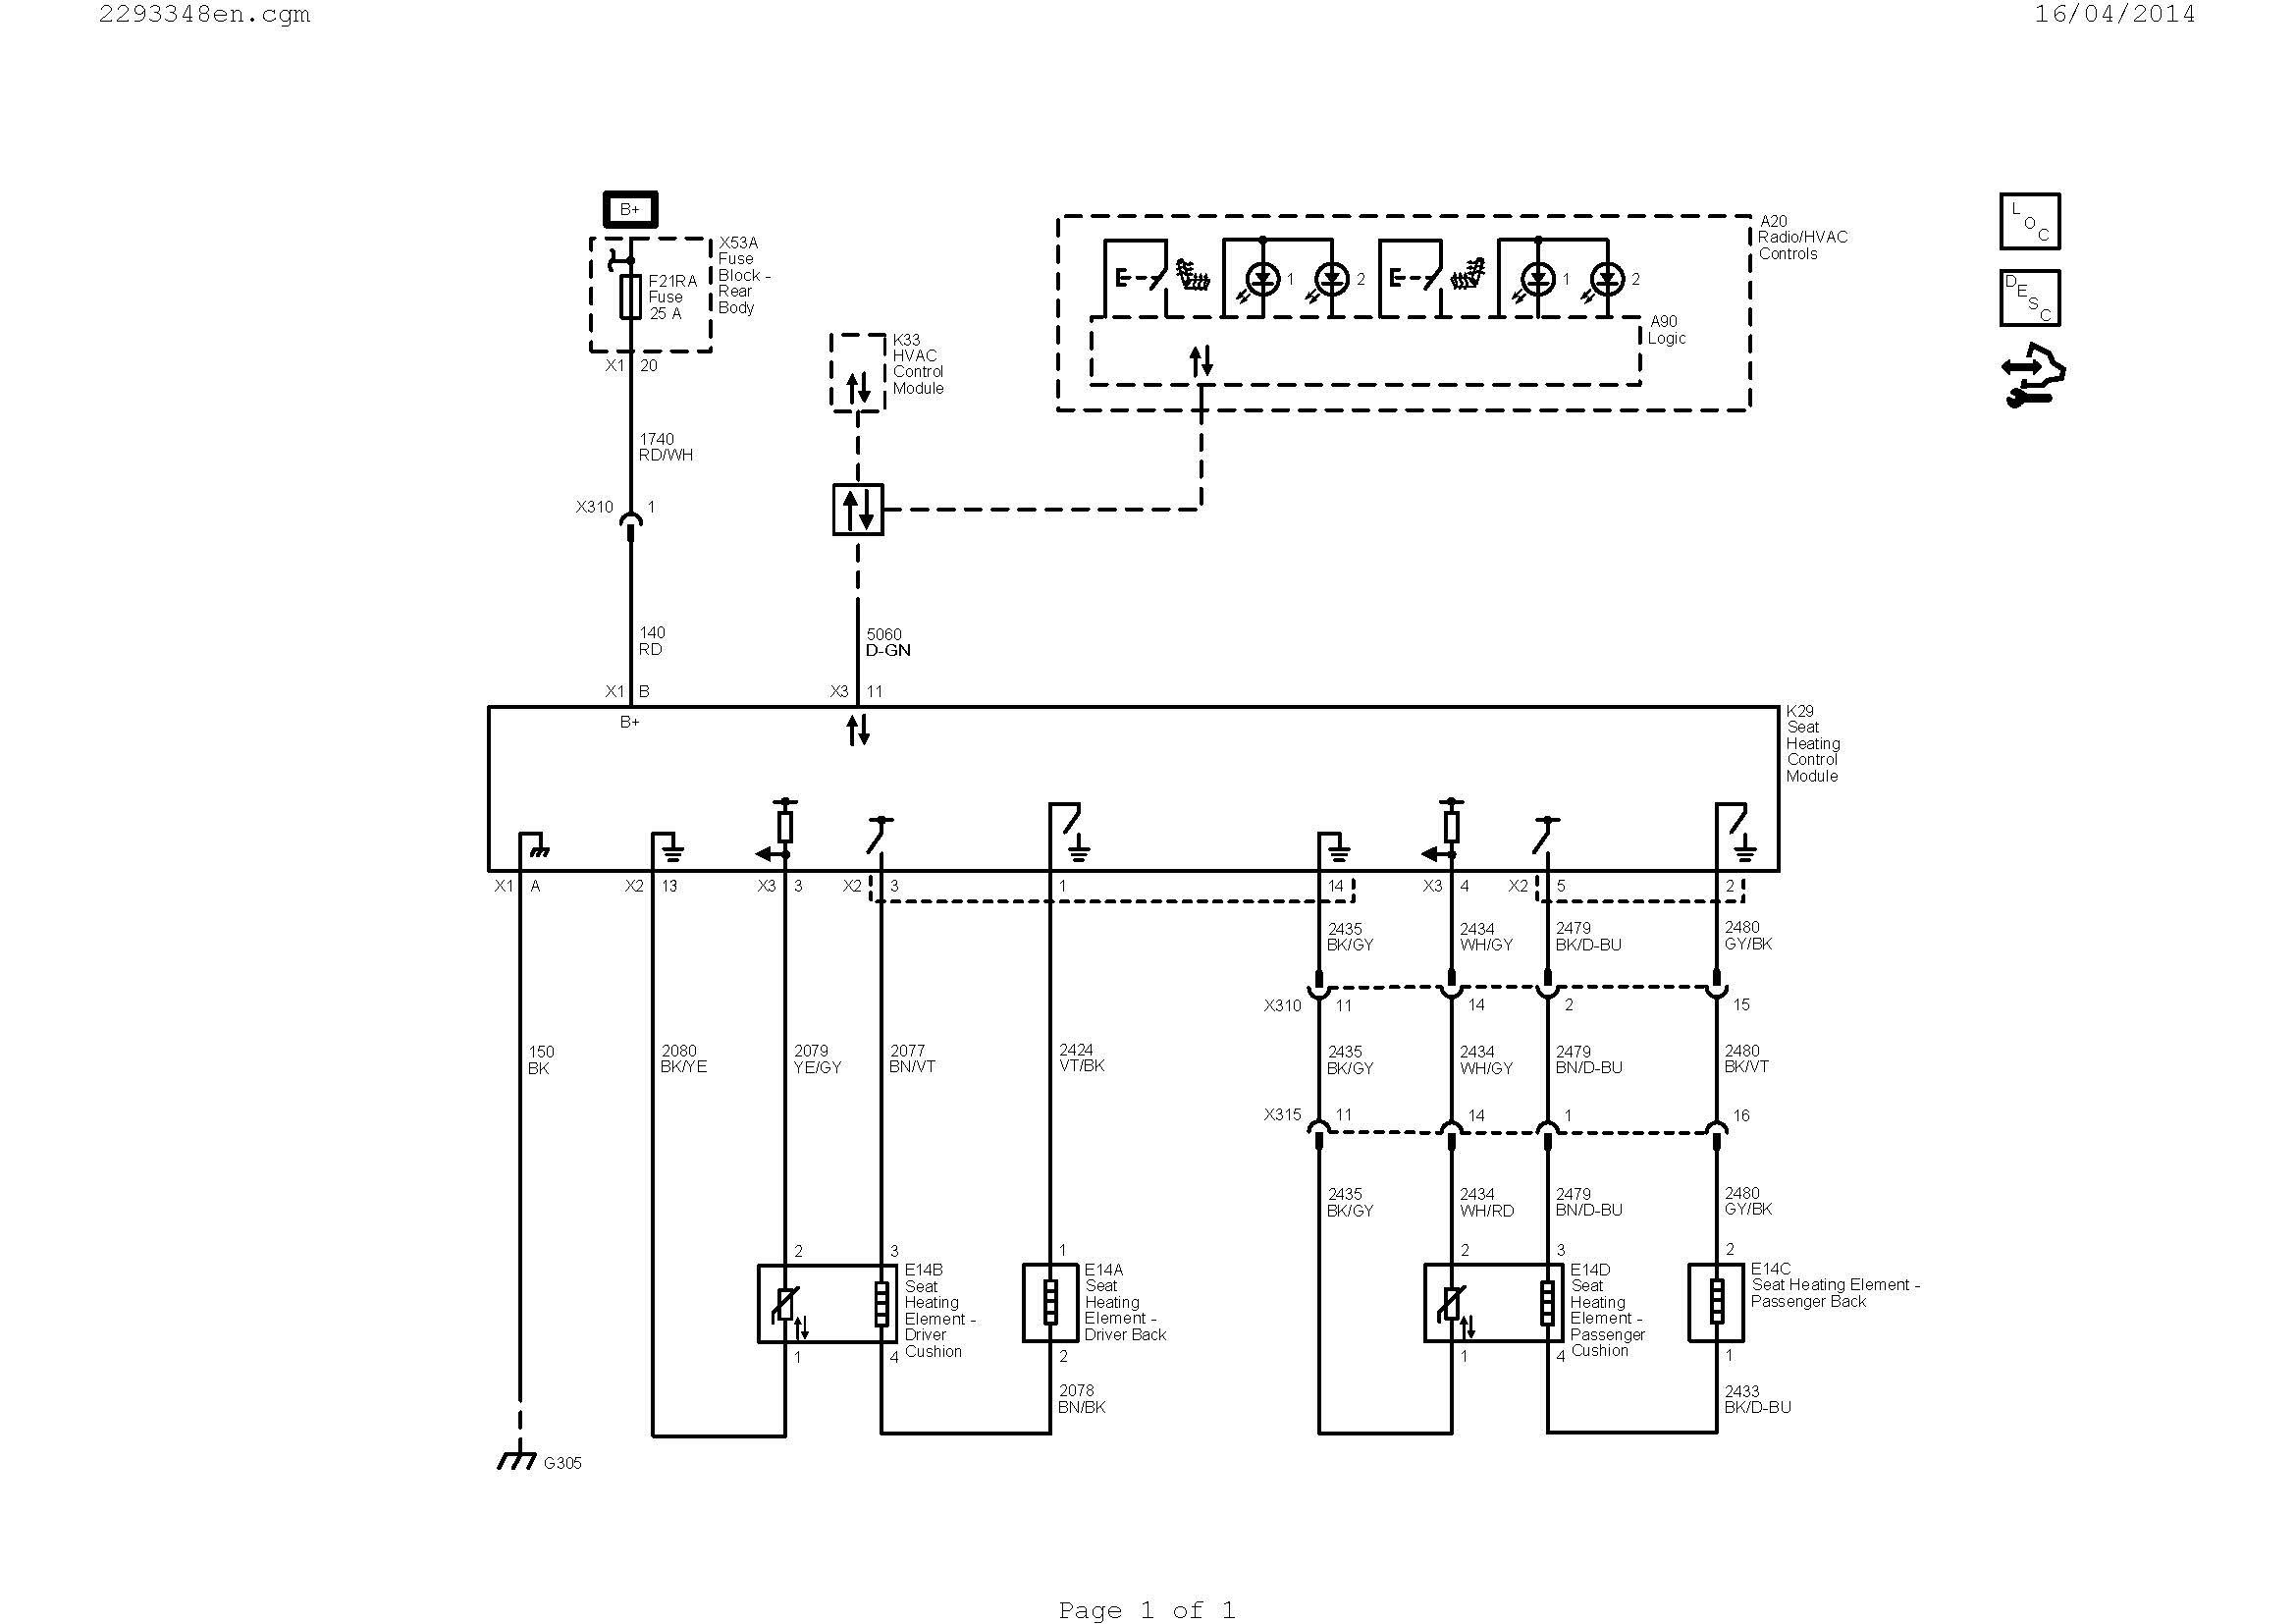 bei encoder wiring diagram Collection-electric heater wiring diagram Collection Wiring Diagrams For Central Heating Refrence Hvac Diagram Best Hvac DOWNLOAD Wiring Diagram 9-s